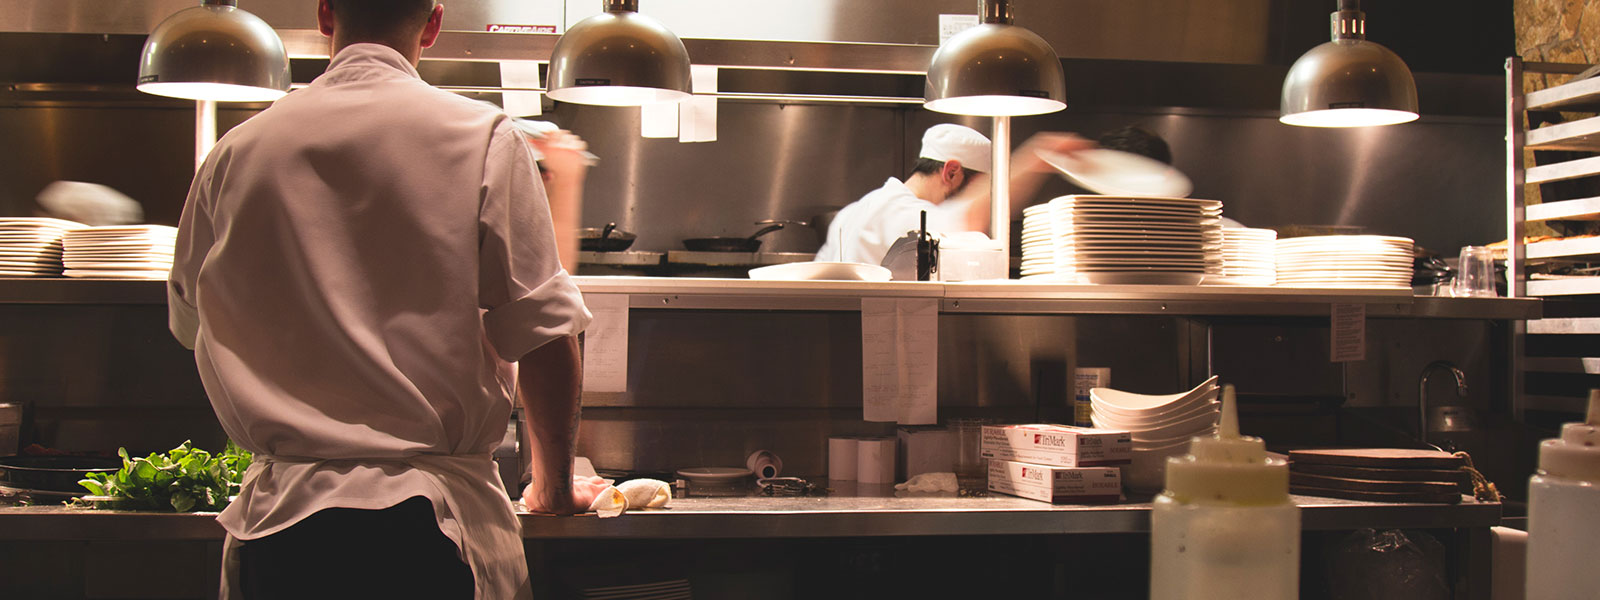 industrial kitchen cleaning services remodeling pictures pressure kleen commercial